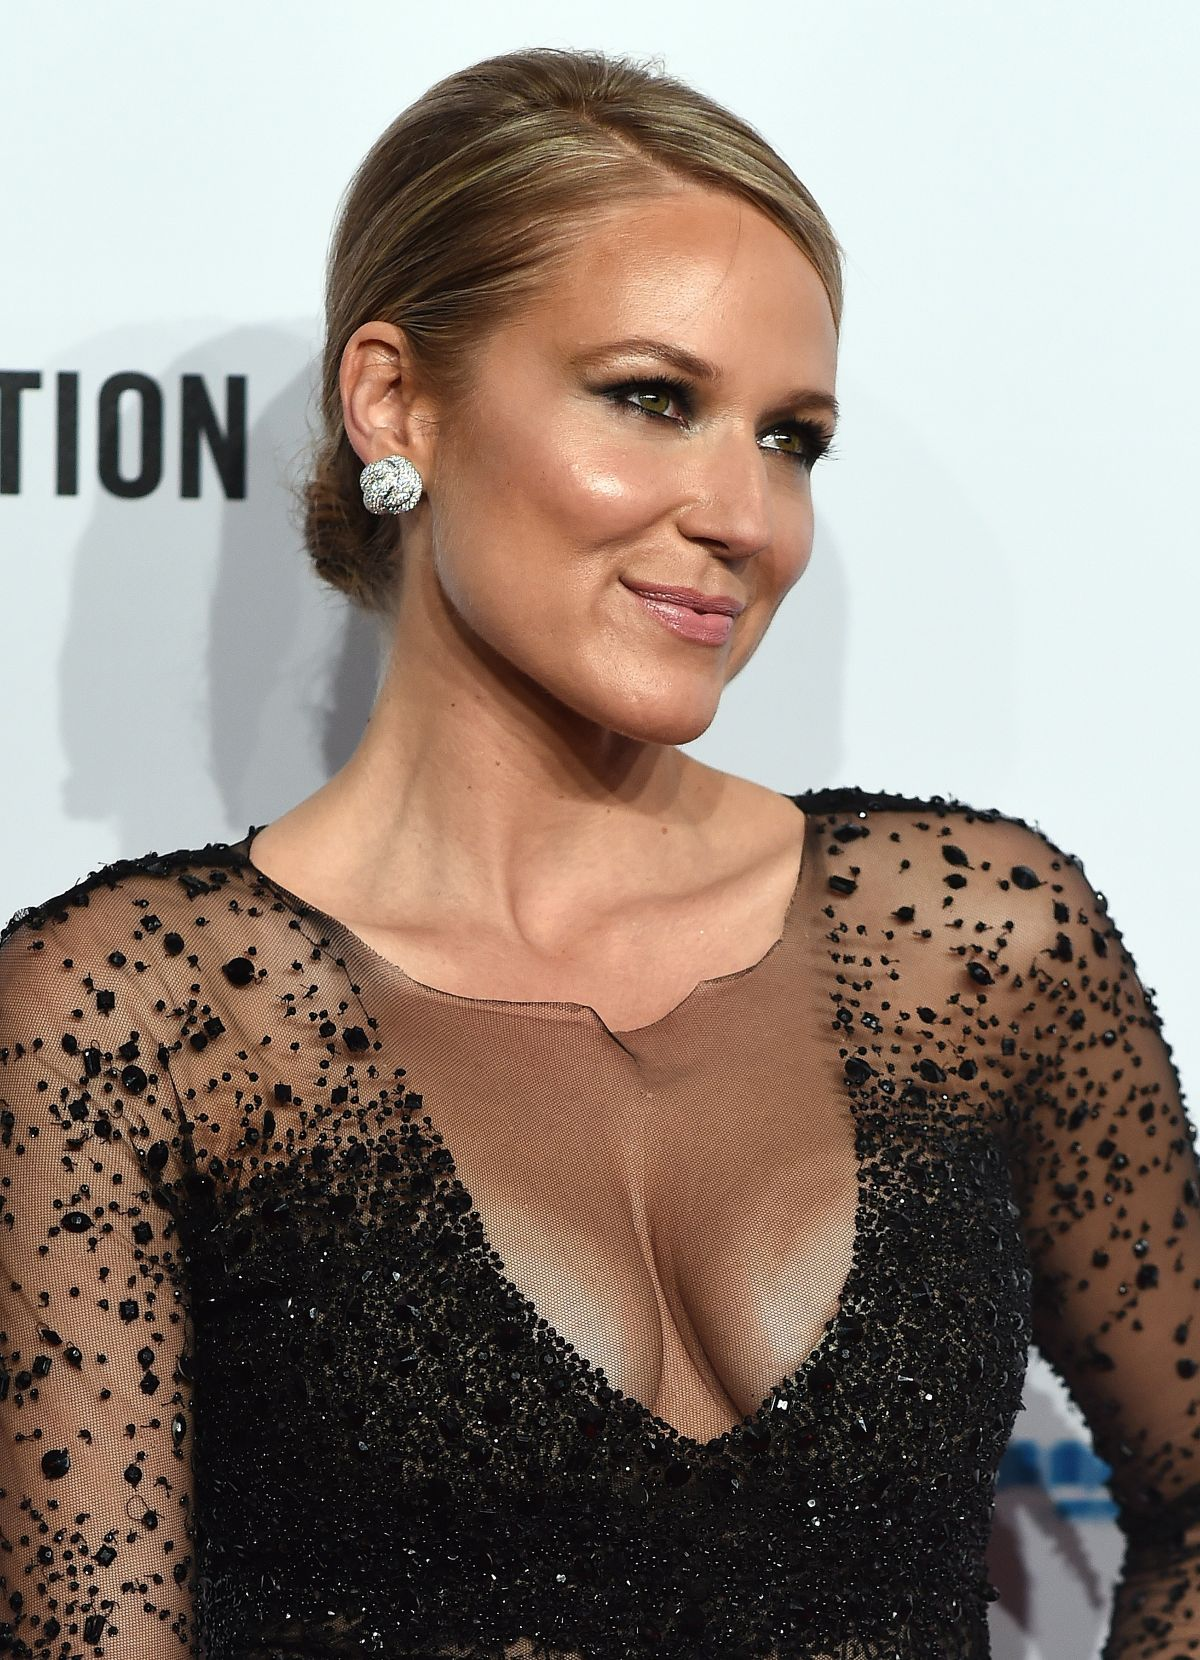 jewel kilcher motherjewel kilcher foolish games, jewel kilcher lyrics, jewel kilcher, jewel kilcher parents, jewel kilcher 2015, jewel kilcher wikipedia, jewel kilcher interview, jewel kilcher net worth, jewel kilcher mother, jewel kilcher family, jewel kilcher father, jewel kilcher brothers, jewel kilcher teeth, jewel kilcher songs, jewel kilcher family tree, jewel kilcher divorce, jewel kilcher sean penn, jewel kilcher instagram, jewel kilcher alaska last frontier, jewel kilcher biography